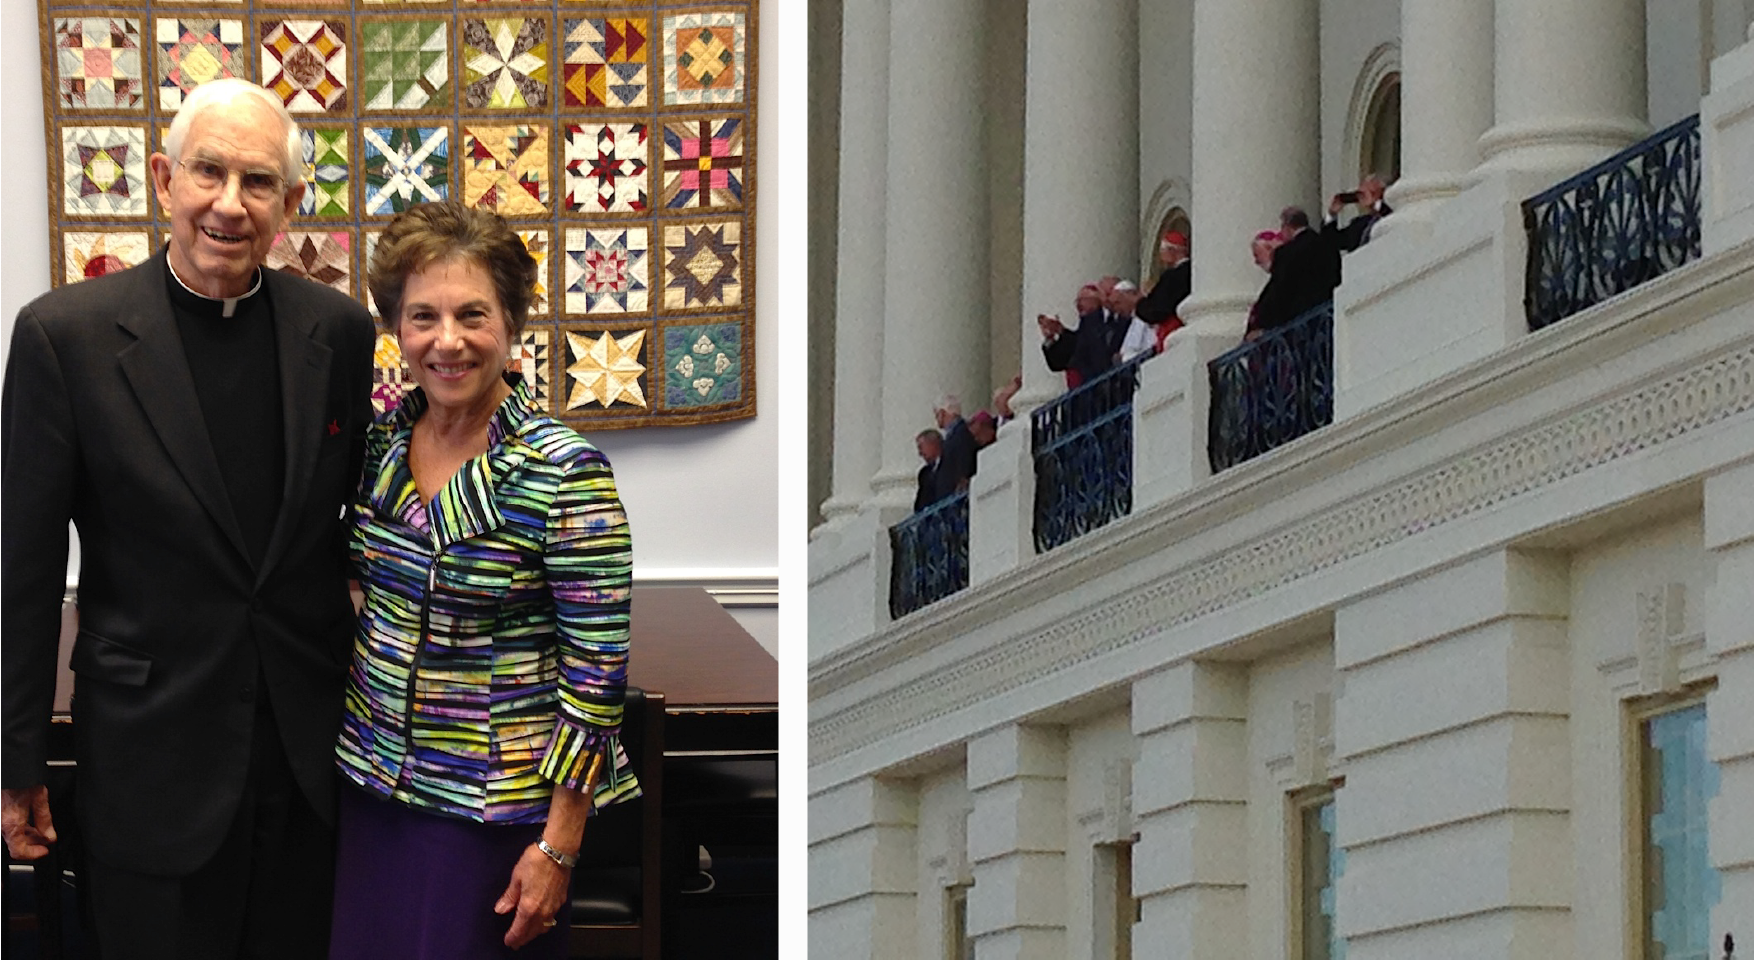 Fr. Bob Oldershaw and Congresswoman Jan Schakowsky in Washington, DC had the privilege of seeing Pope Francis.